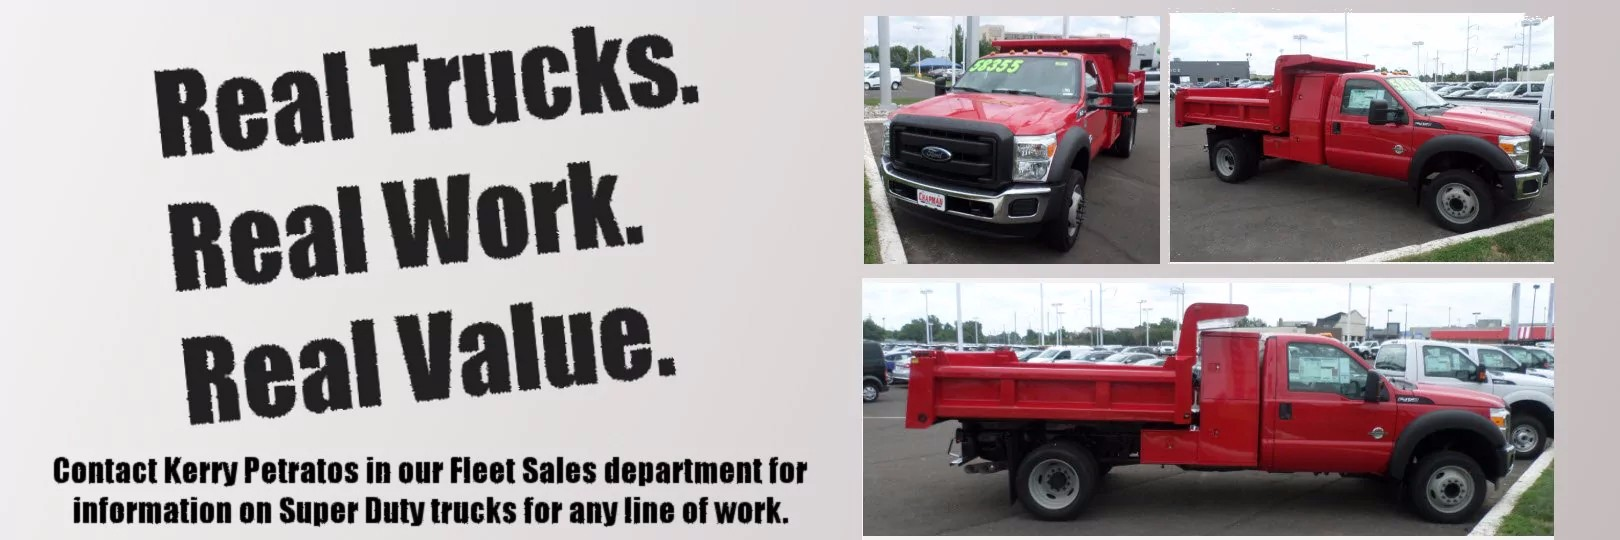 Contact us for fleet inventory information